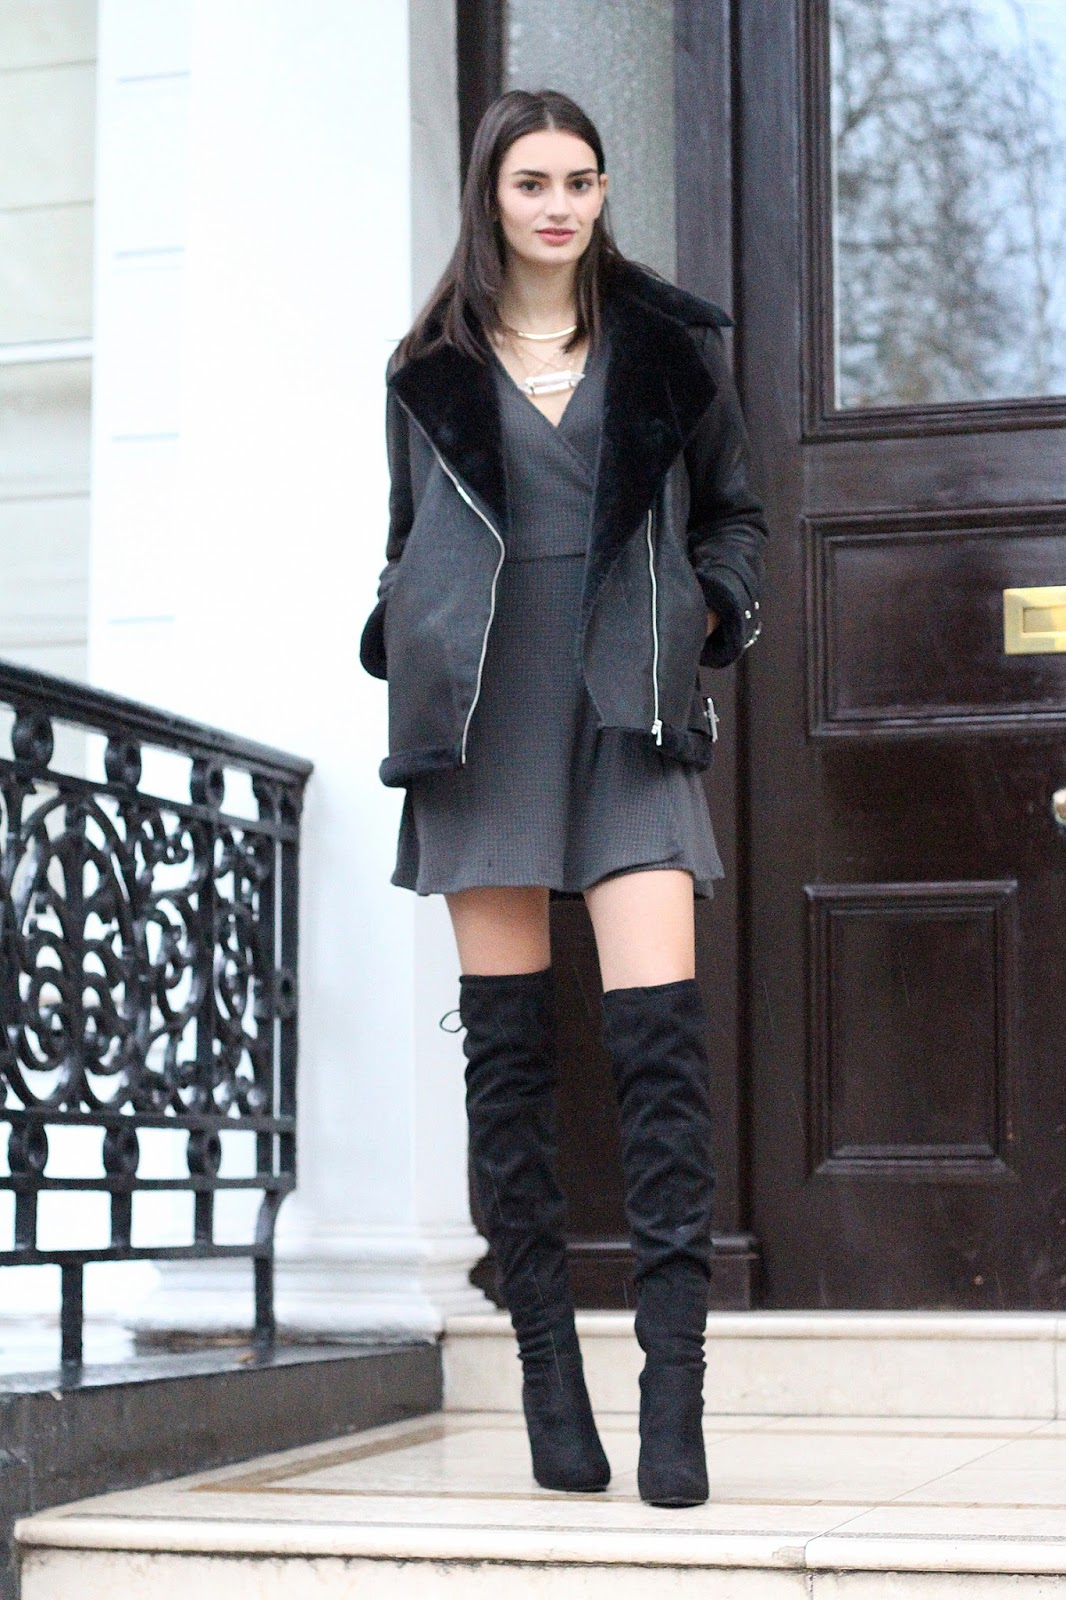 peexo fashion blogger wearing winter outfit with knee high boots